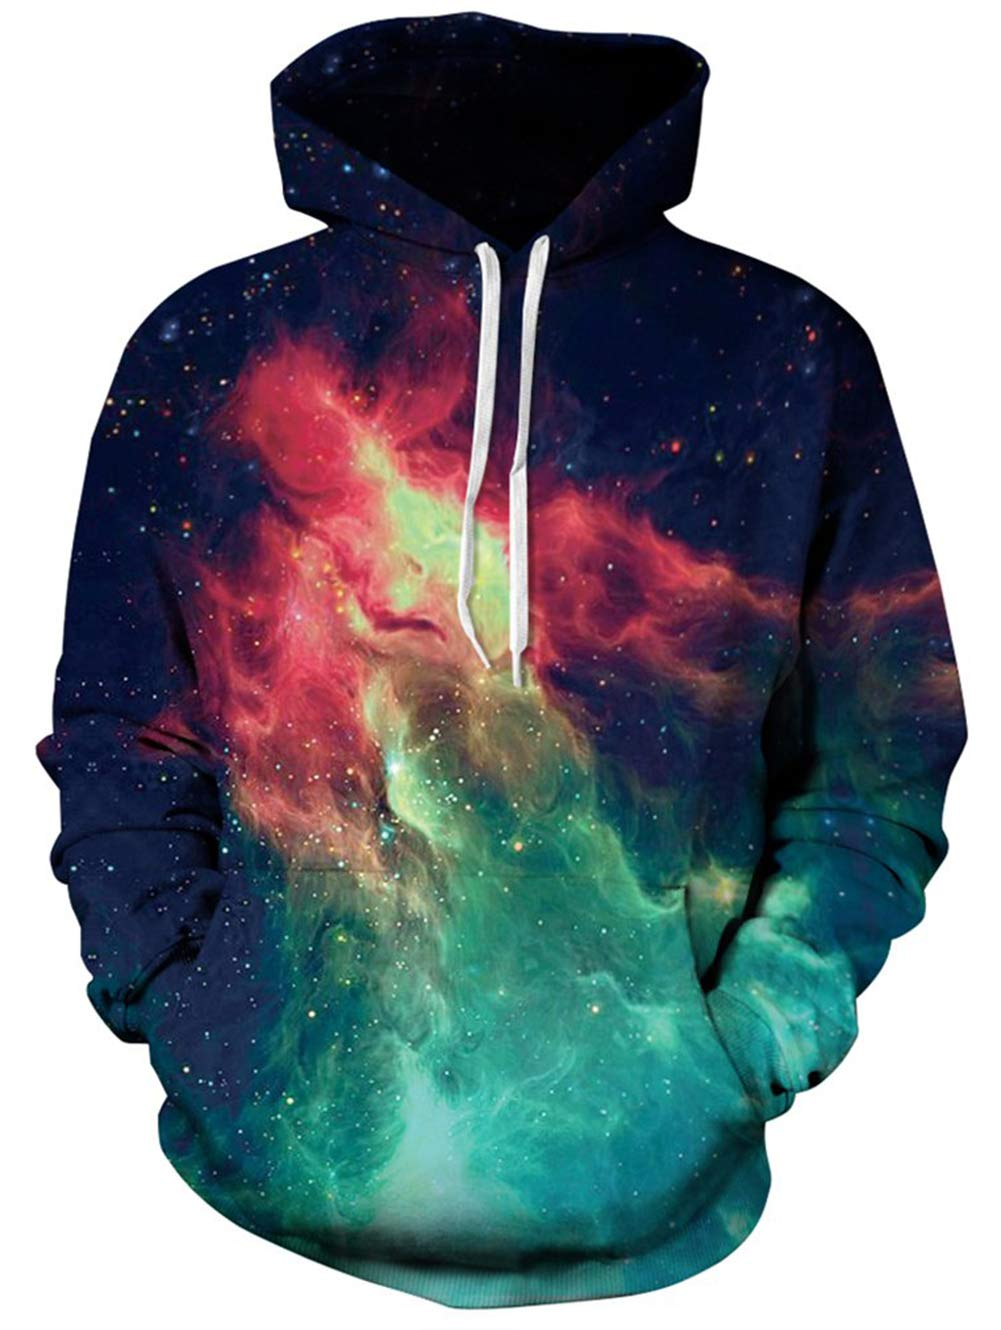 TUONROAD Mens Trendy Drawstring Trippy 3D Digital Print Hoodies Shirt Navy Blue Yellow Turquoise Green Galaxy Planet Nebula Universe Realistic Sweatshirt Athletic Pullover with Big Pocket Front